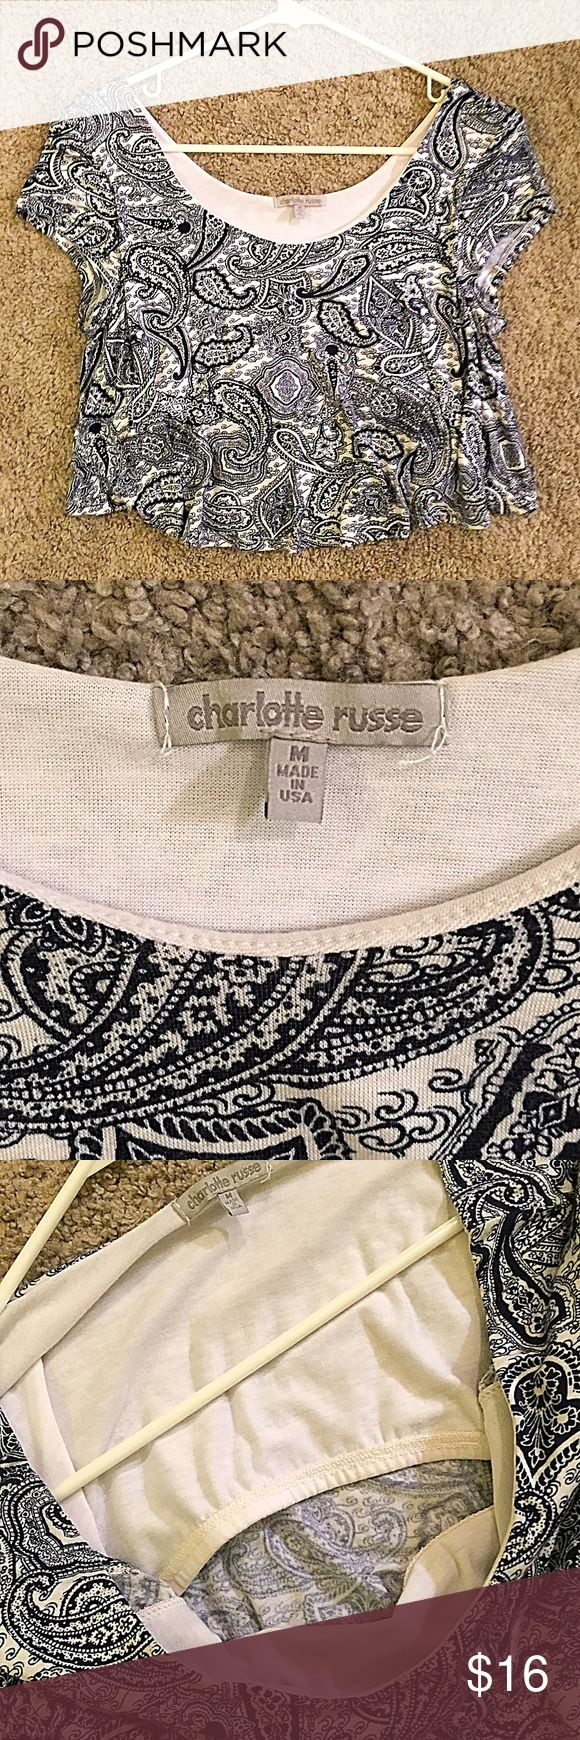 Charlotte Russe paisley crop top medium CHARLOTTE RUSSE blue and white crop top with paisley pattern. Has built in shelf bra and is very flowy and cute. Never worn and perfect condition ( NWOTs). Listed size medium but would also fit small Charlotte Russe Tops Crop Tops